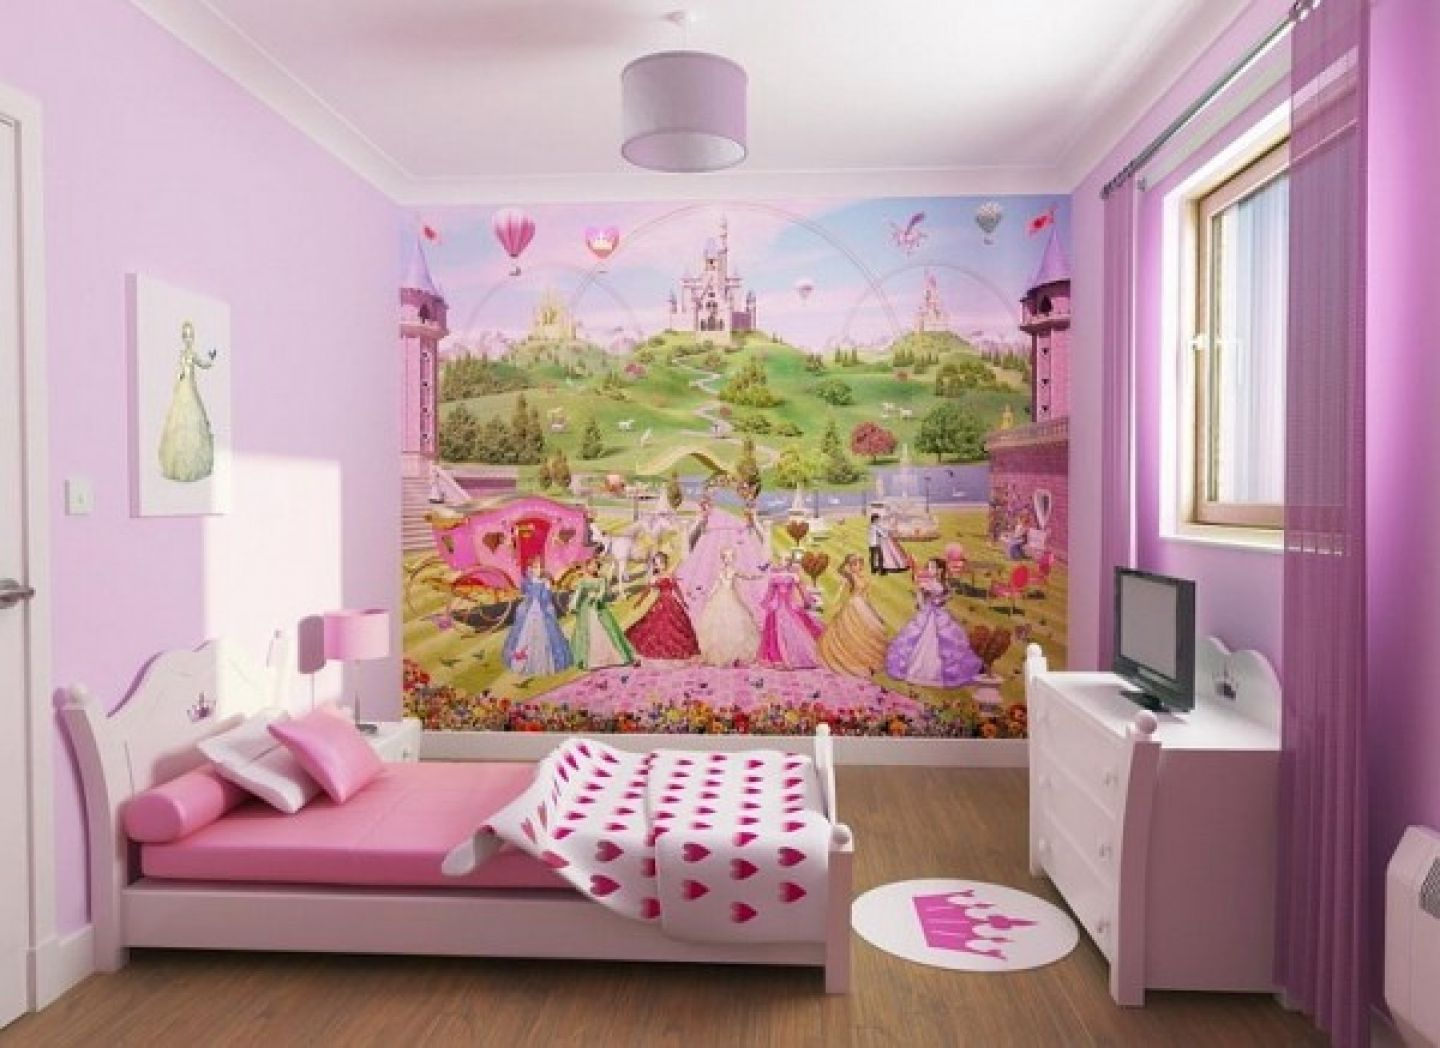 Wall Designs For Girls Room 100 girls room designs tip pictures Girls Bedroom Stylewall Murals Bedroom Bedroom Decor And Girls